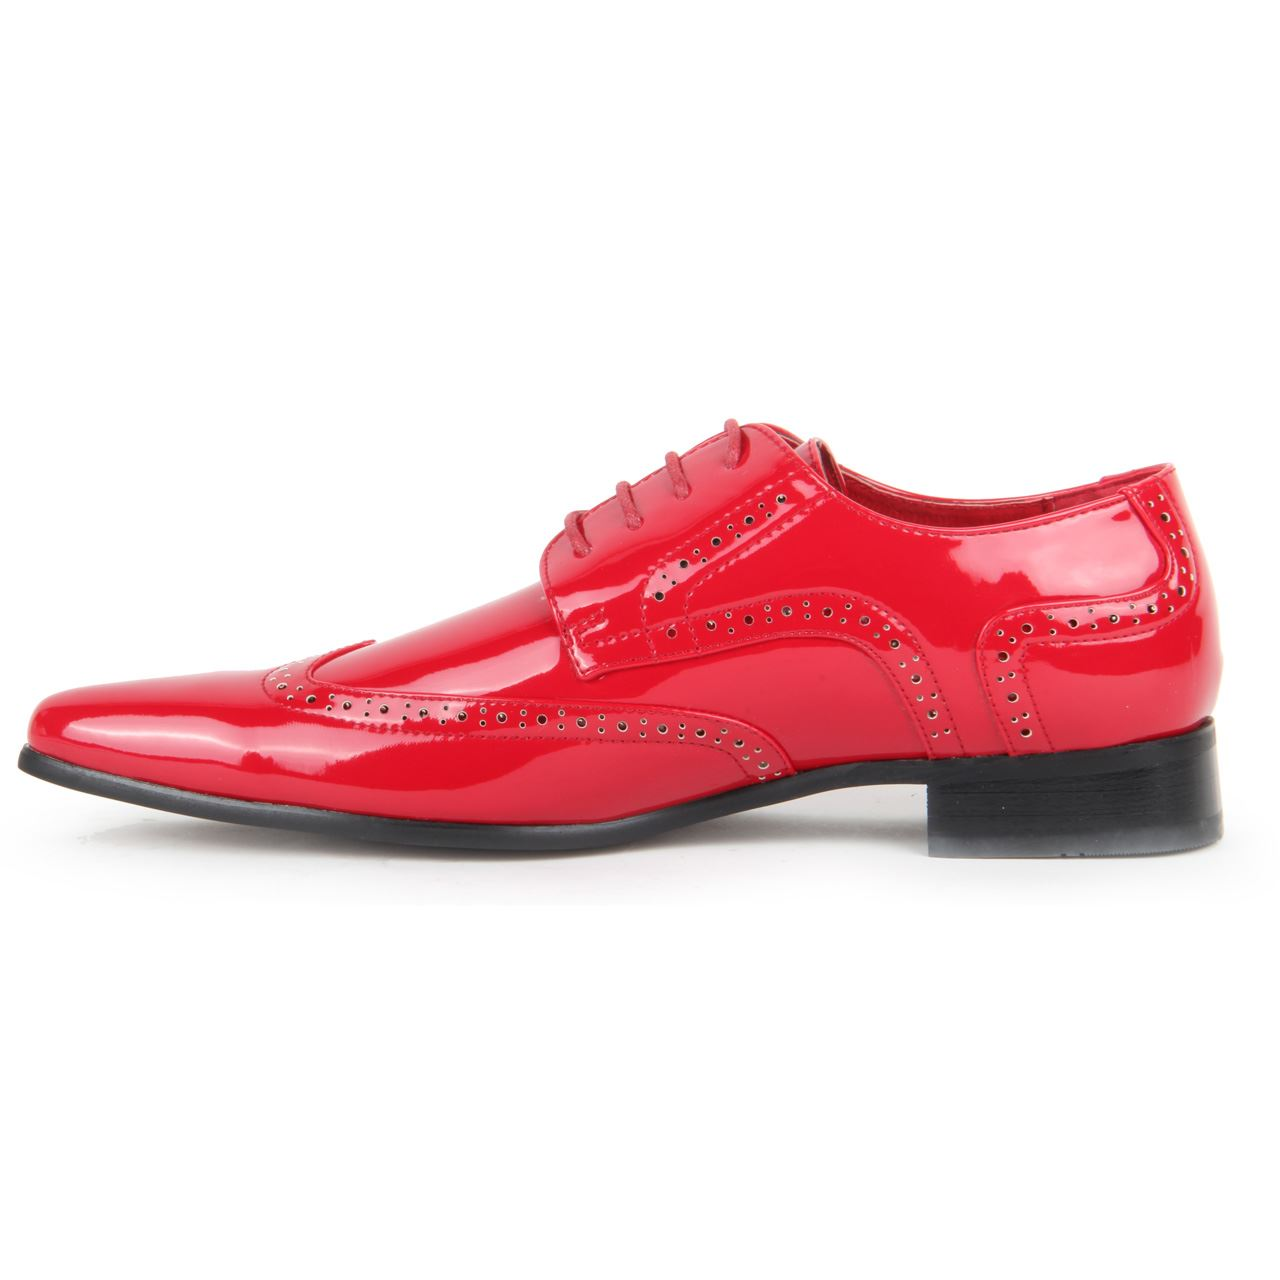 Mens-Smart-Lace-Up-Pointed-Toe-Brogue-Formal-Patent-Leather-Lined-Shoes thumbnail 7